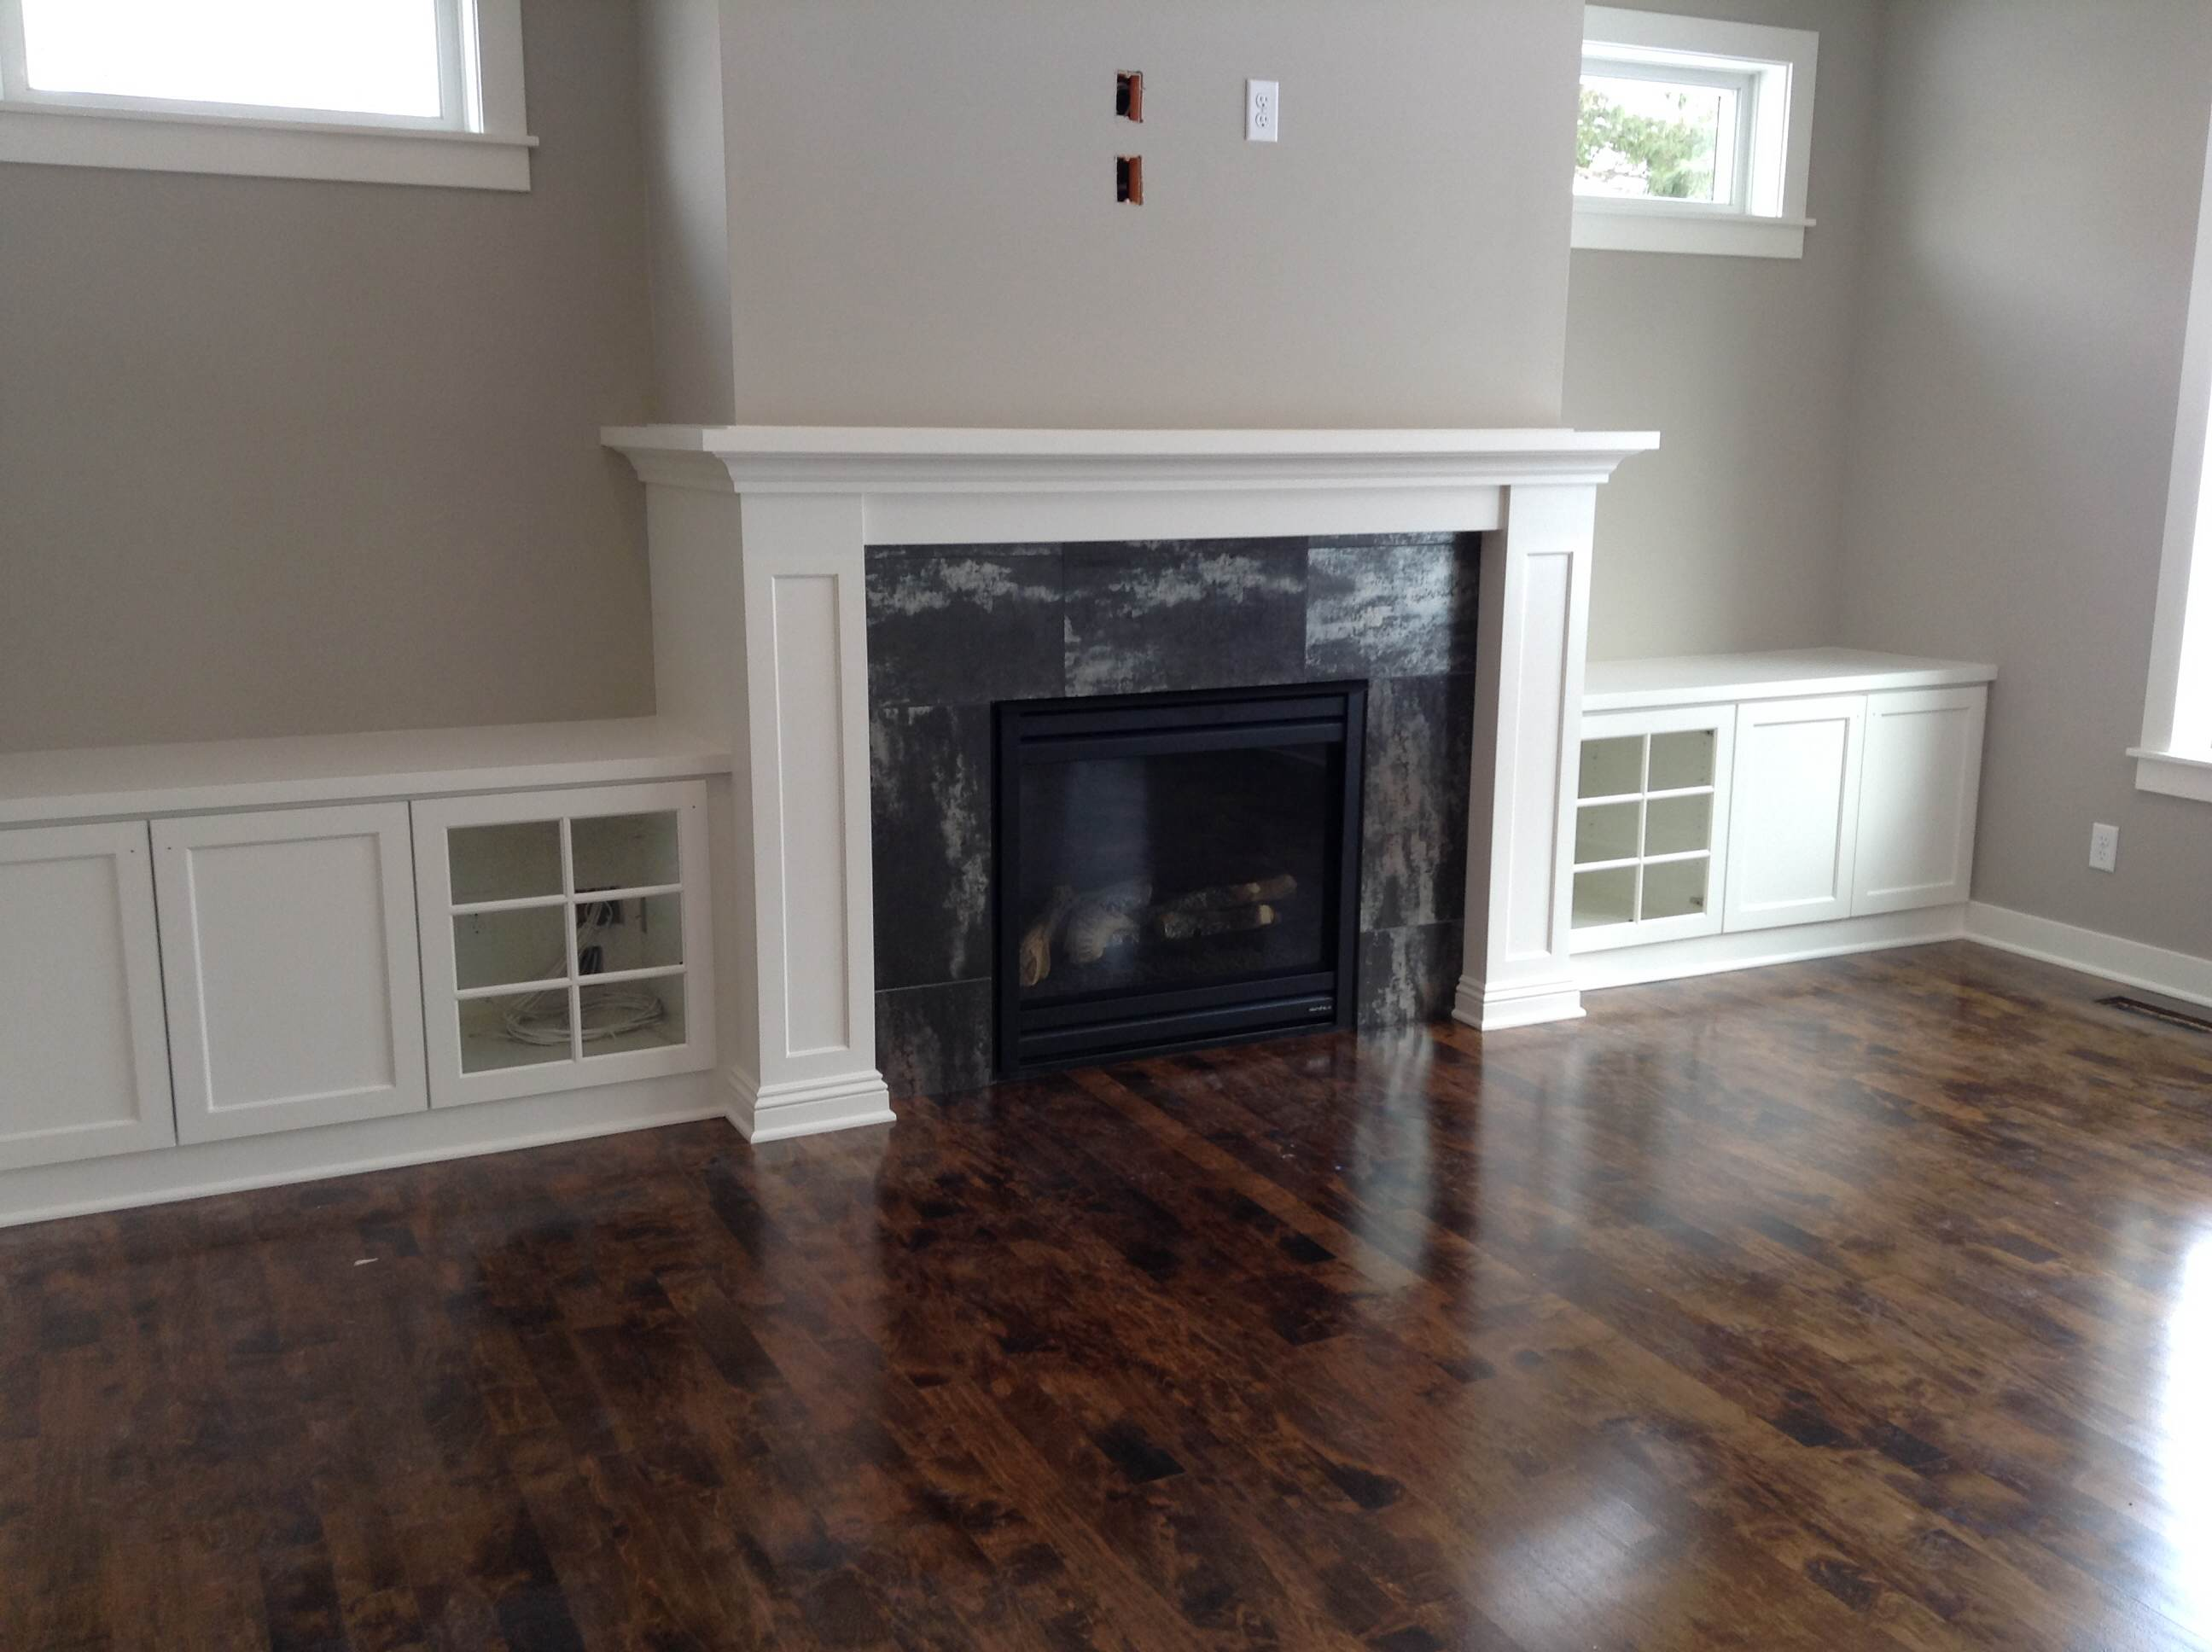 Fireplace - Riley/Hohn